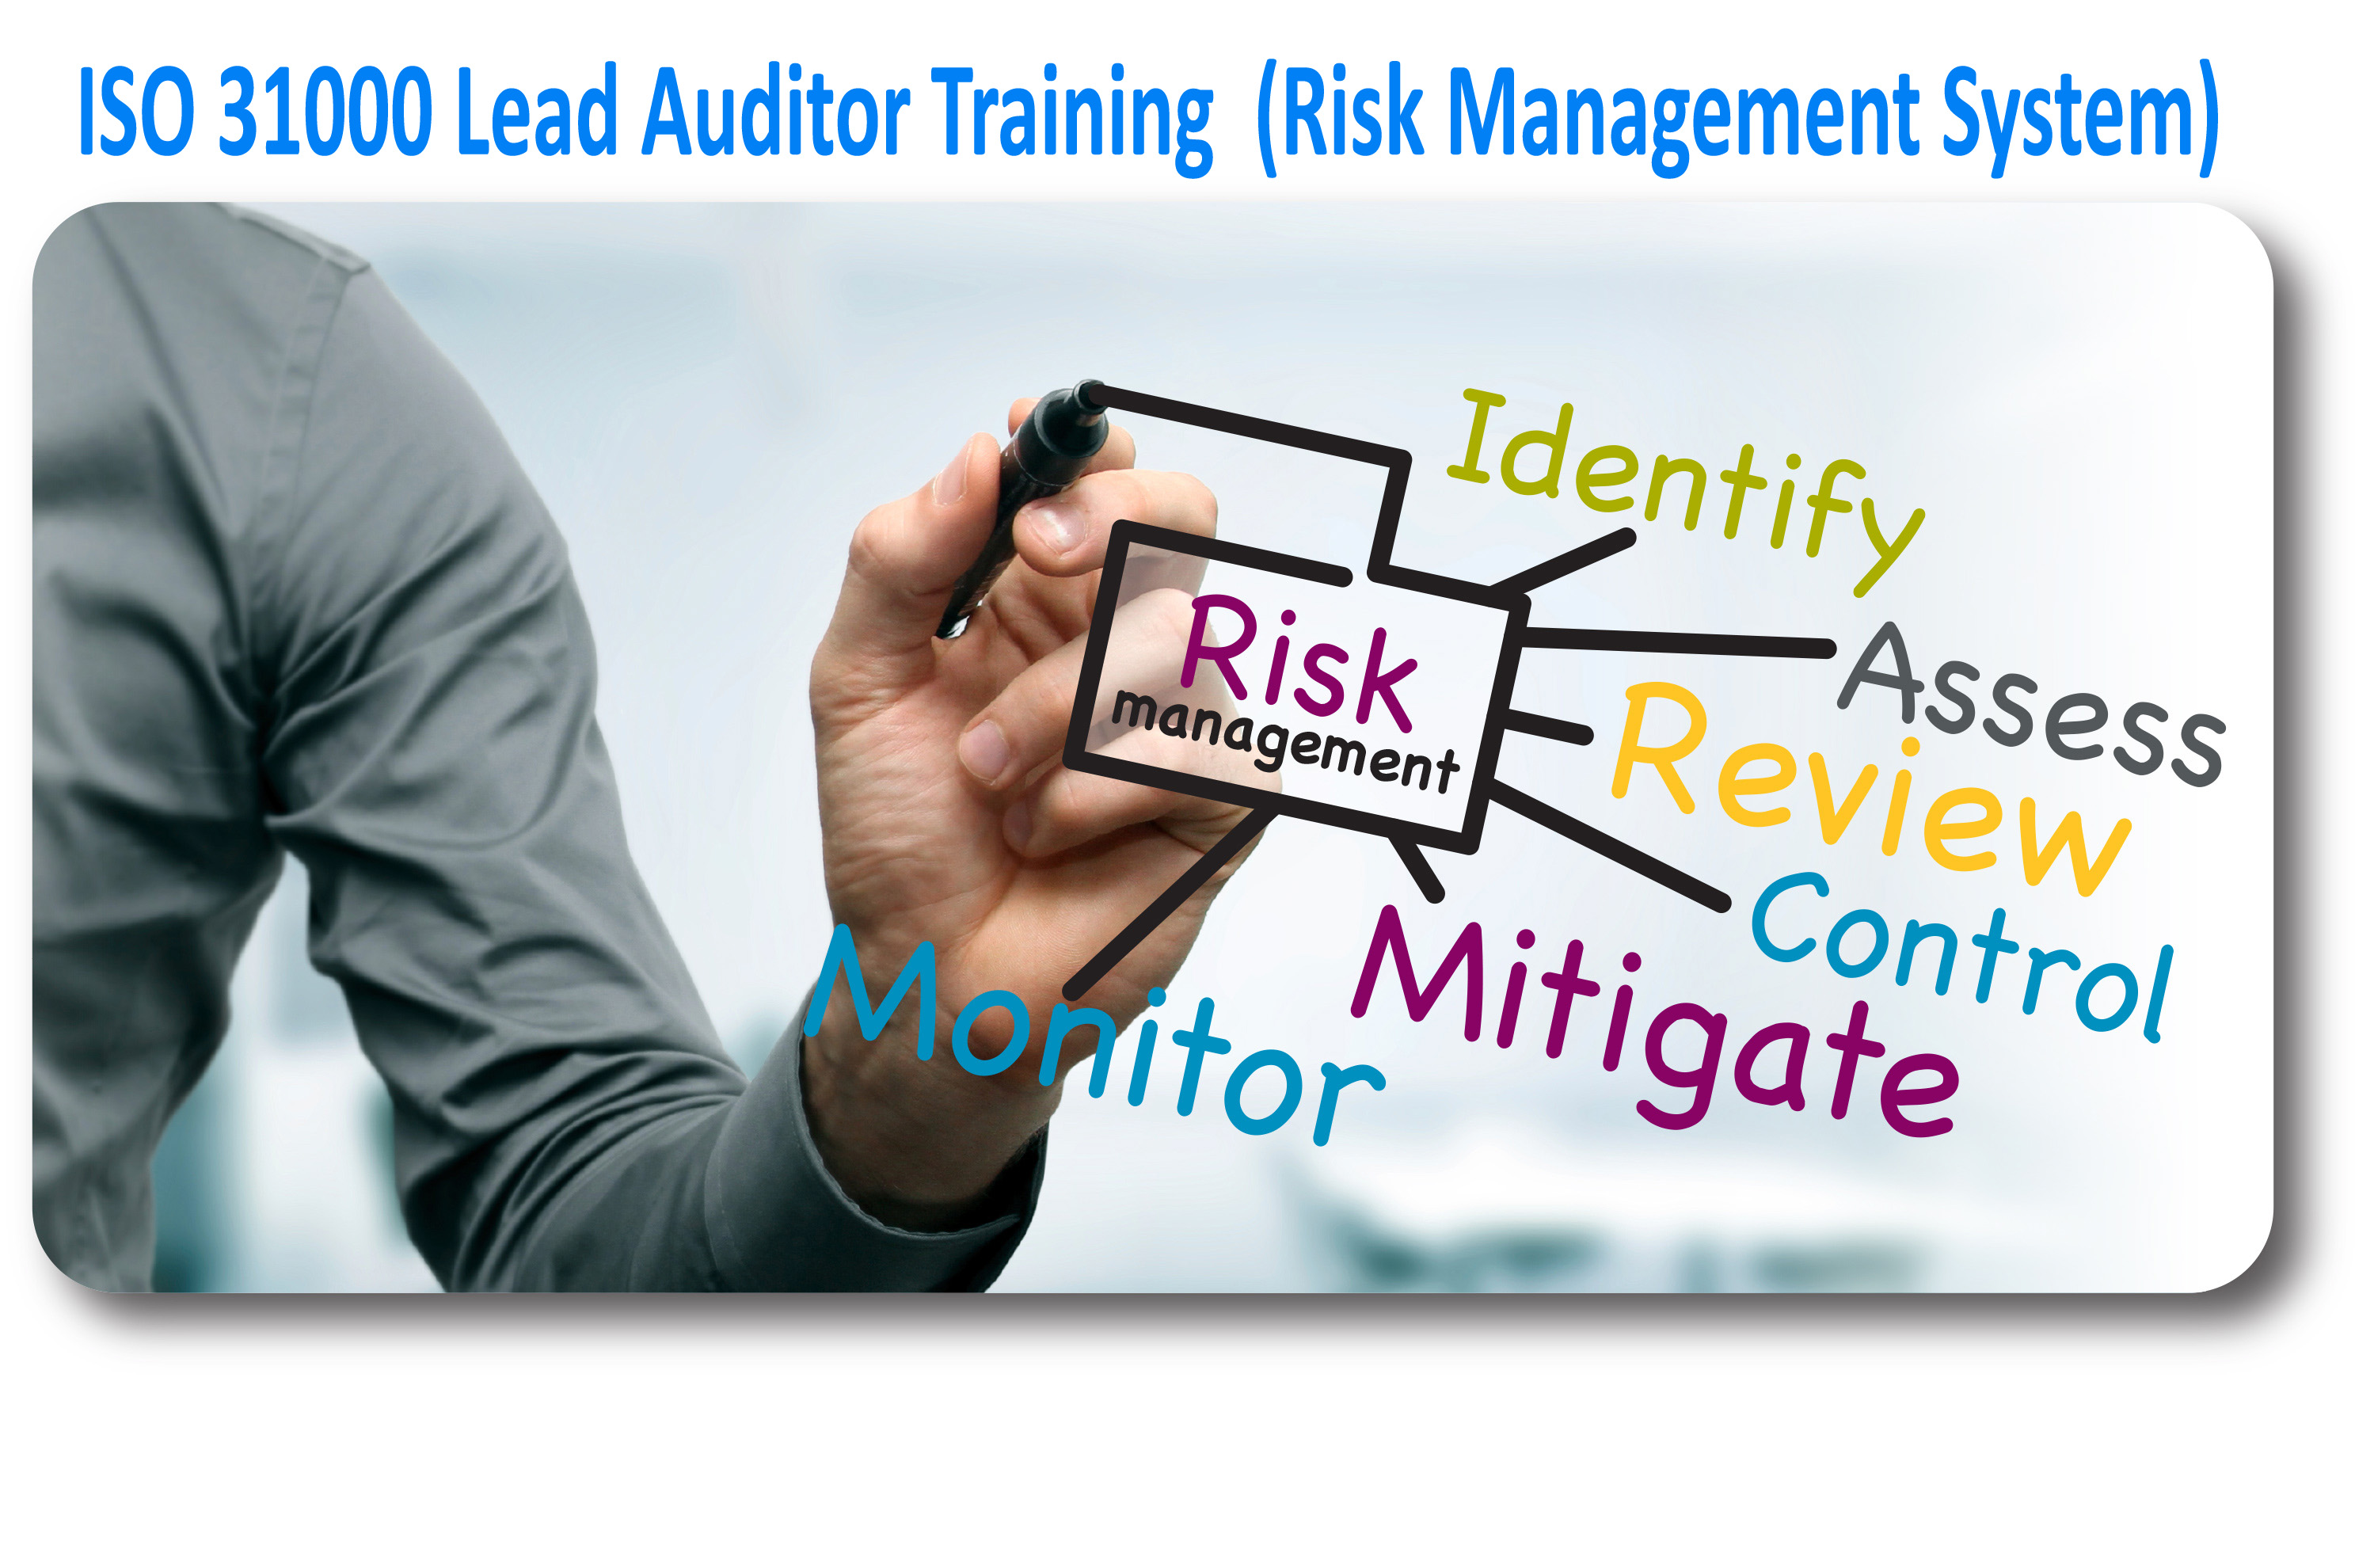 ISO 31000 Risk Management Training in Pakistan